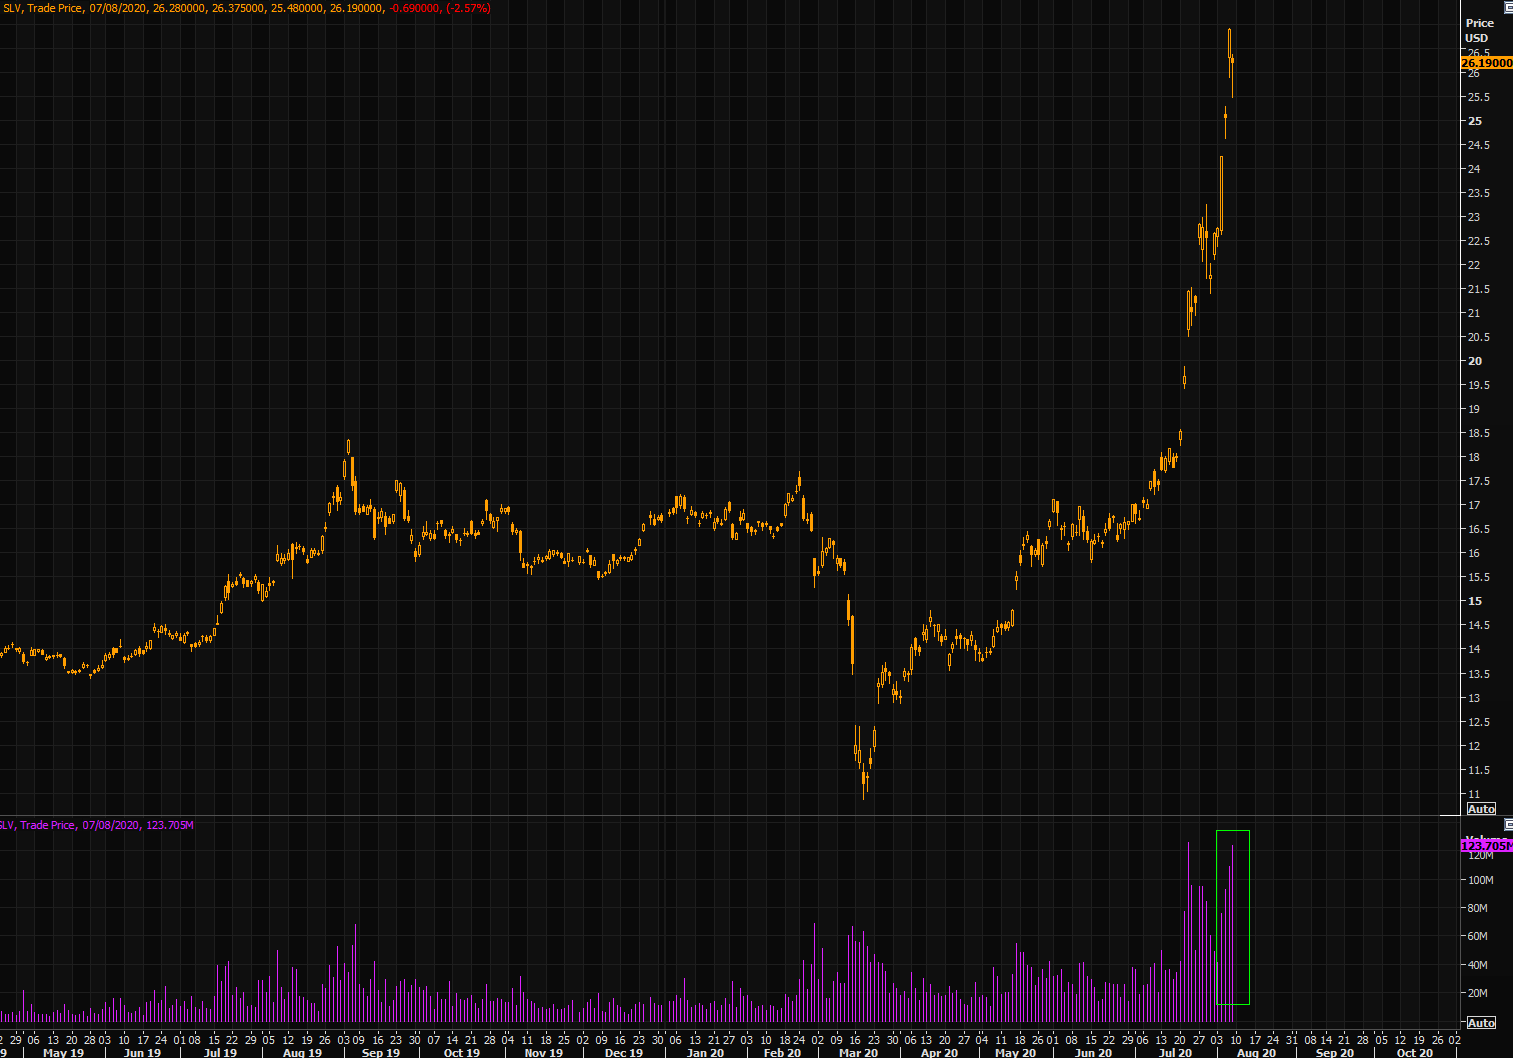 Silver ETF SLV is up +140% since March lows